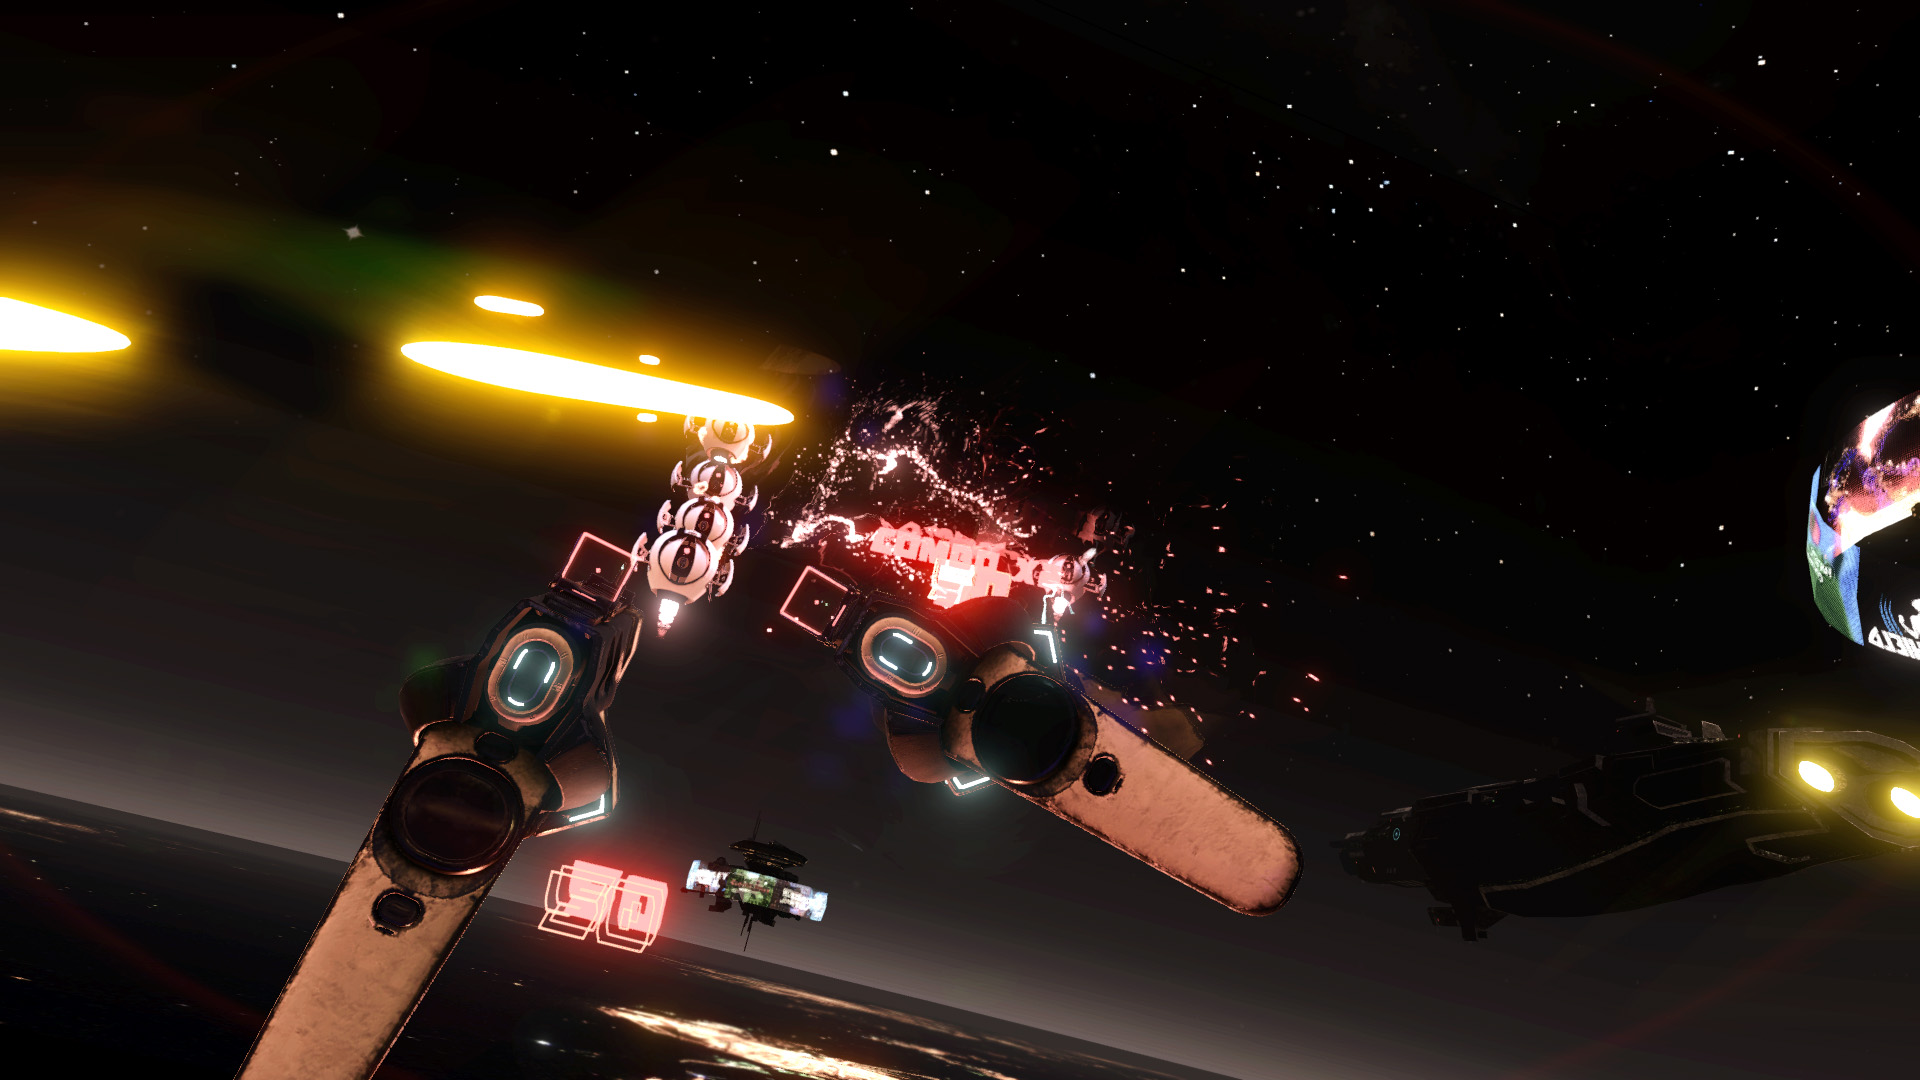 space pirate trainer vr video game wallpaper 67928